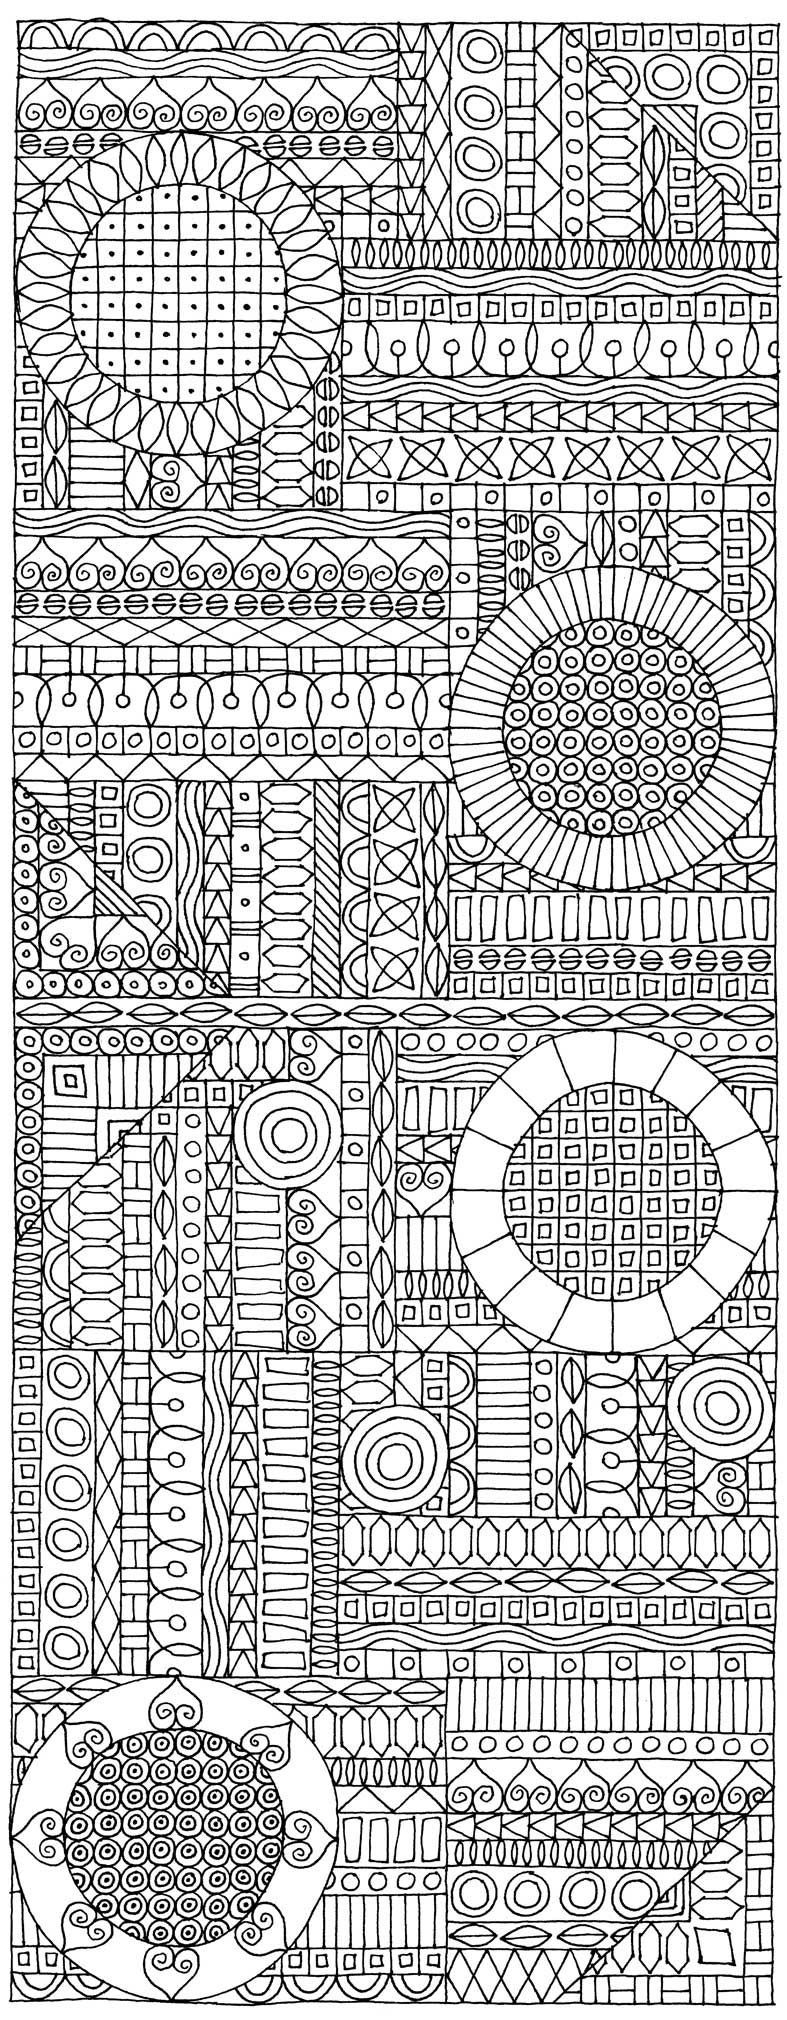 Pin by rachael race on doodle pinterest doodles zentangles and